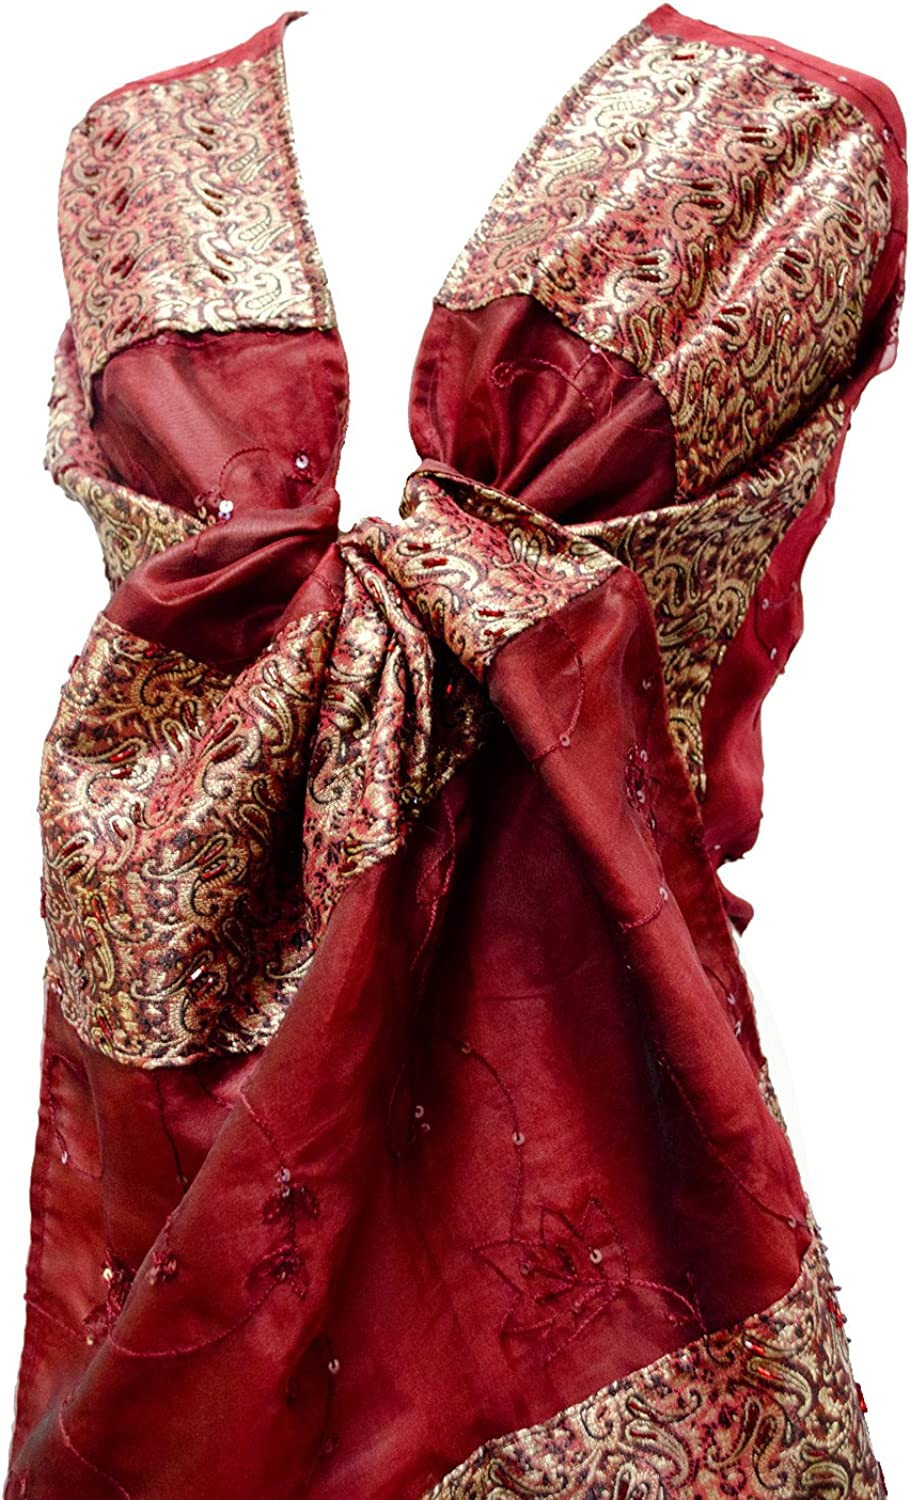 Beaded Emb Brocade Silk Organza Stole Wrap Shawl Table Runner Fringe Red gold